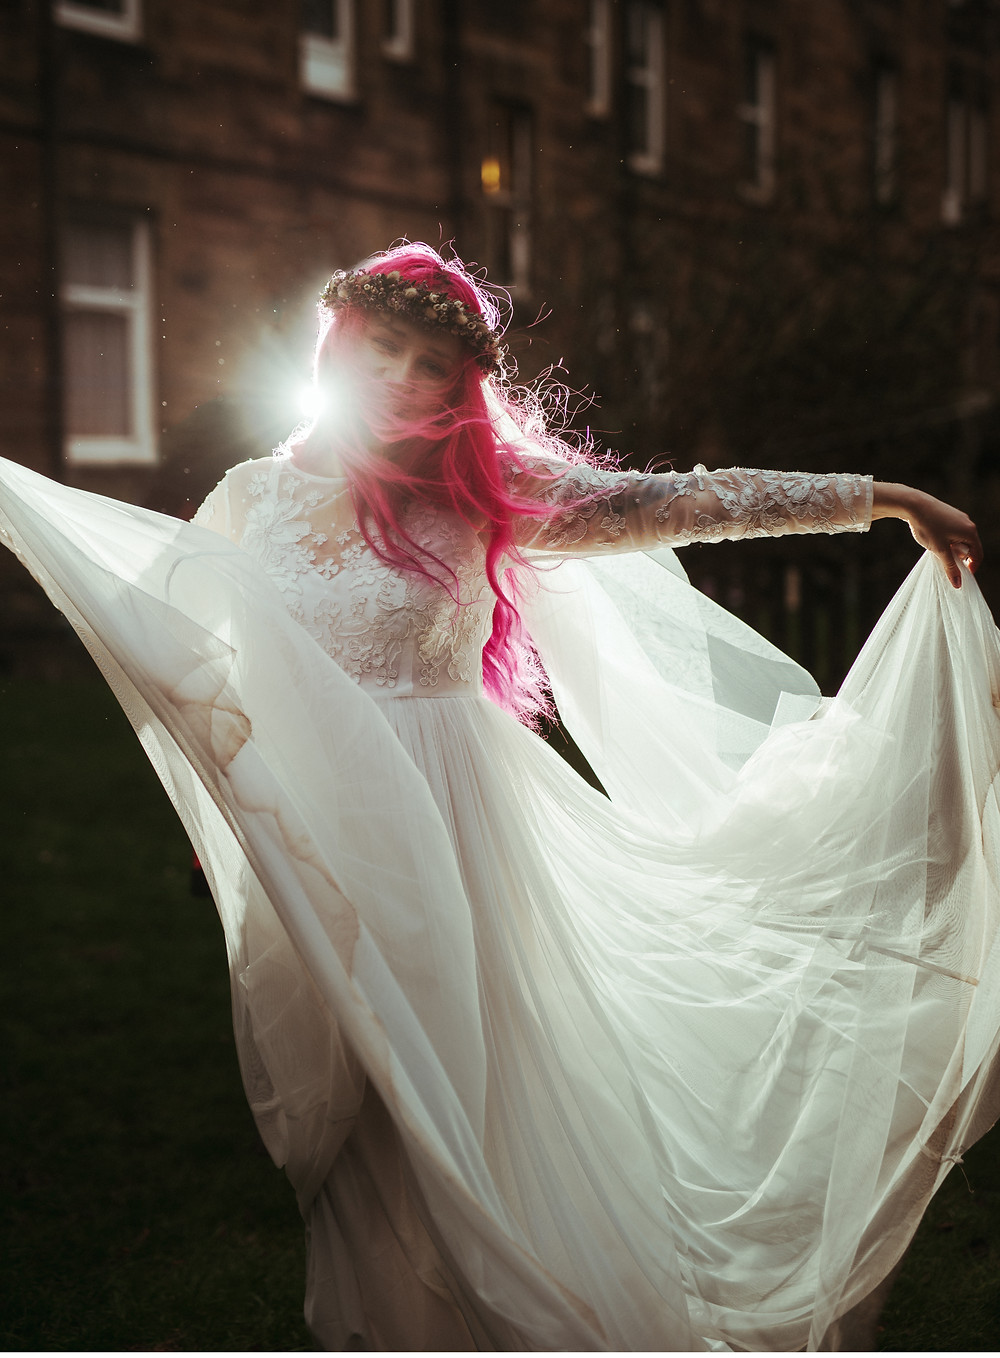 An alternative bride with a flowers crown and pink hair in Edinburgh at Holyrood Park. She is wearing a white flowing wedding dress with lace sleeves is from ASOS. Her wedding flower crown is from Snapdragon Edinburgh. The boho bride is dancing with her flow wedding dress during dusk.